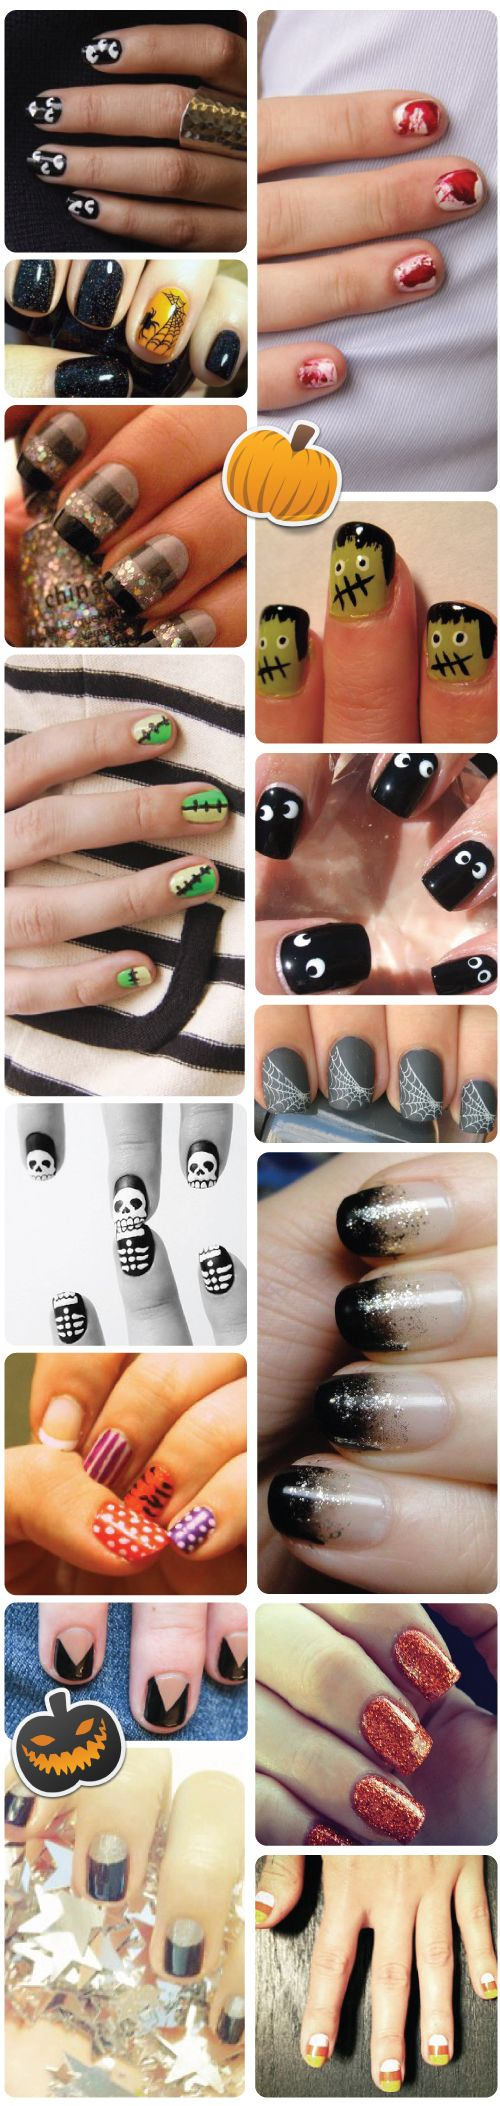 Halloween nails! Not that I'm huge on nail art, but there are times when it could be appropriate and fun.